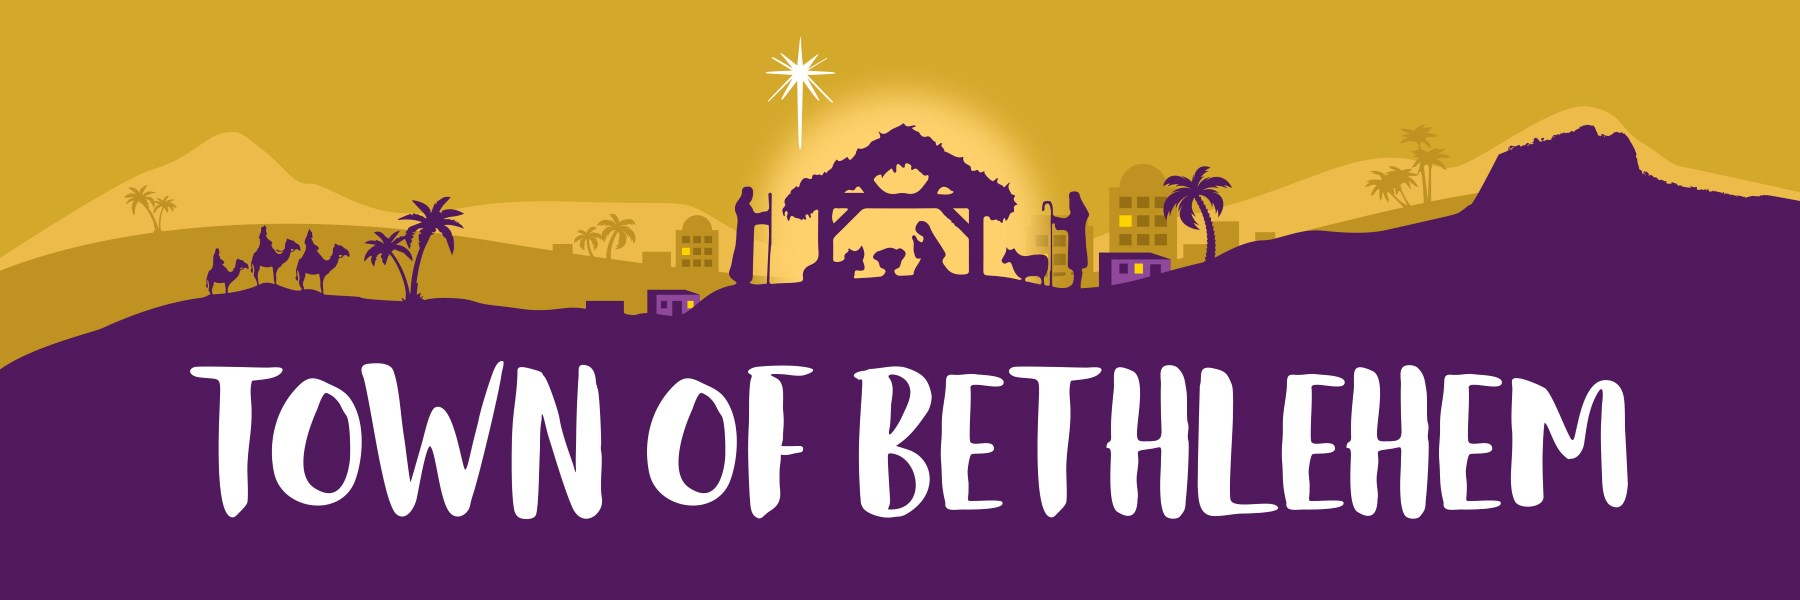 Bethlehem clipart bible city. Town of stable on